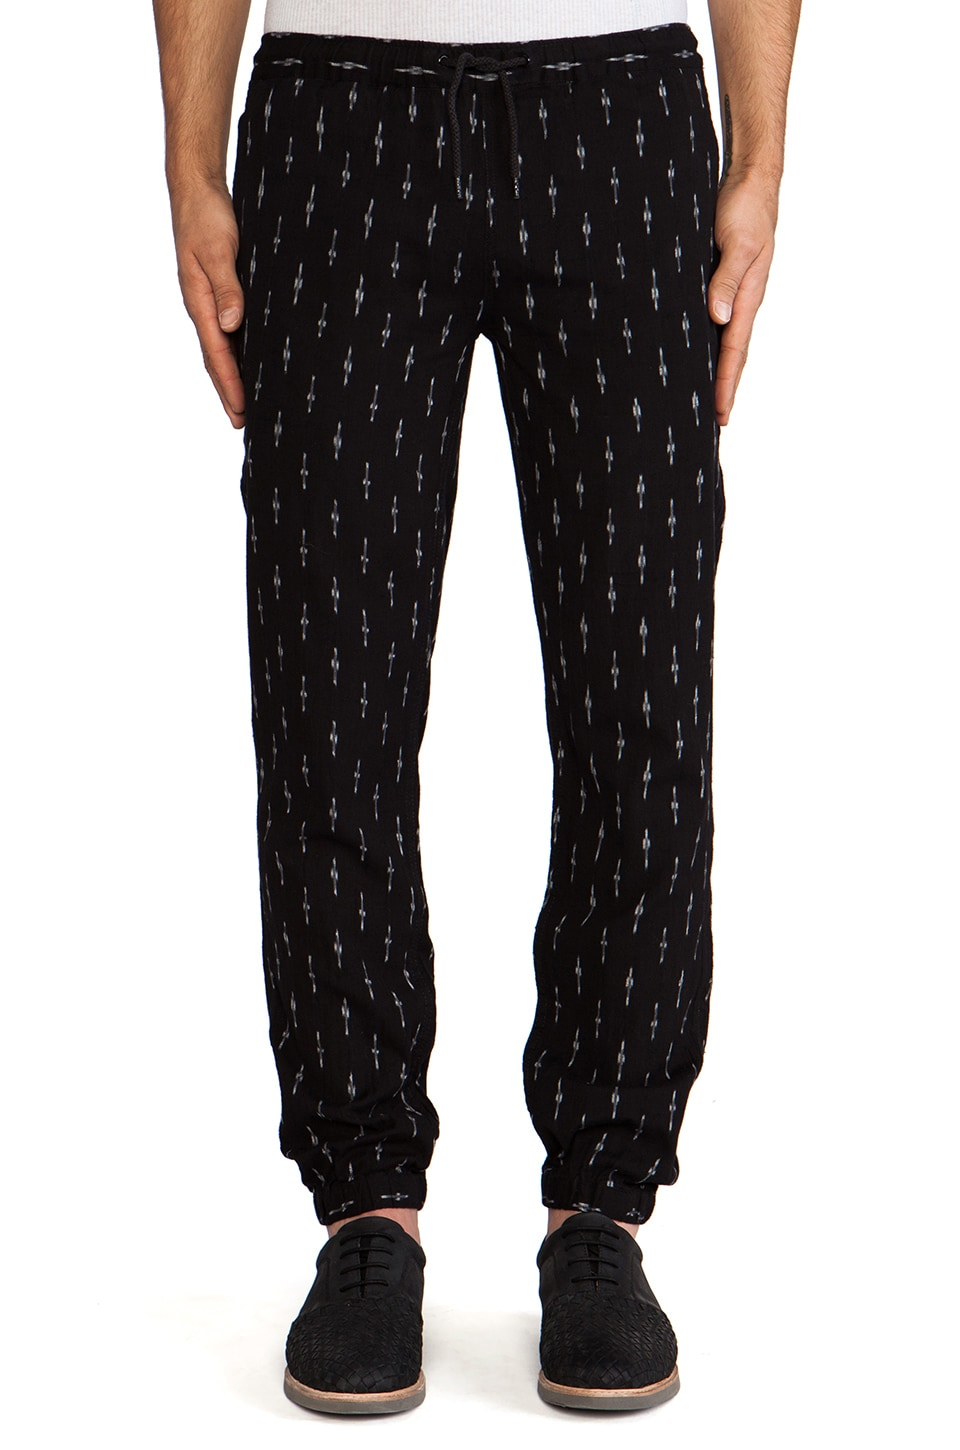 10 Deep Full Cozy Pant in Black